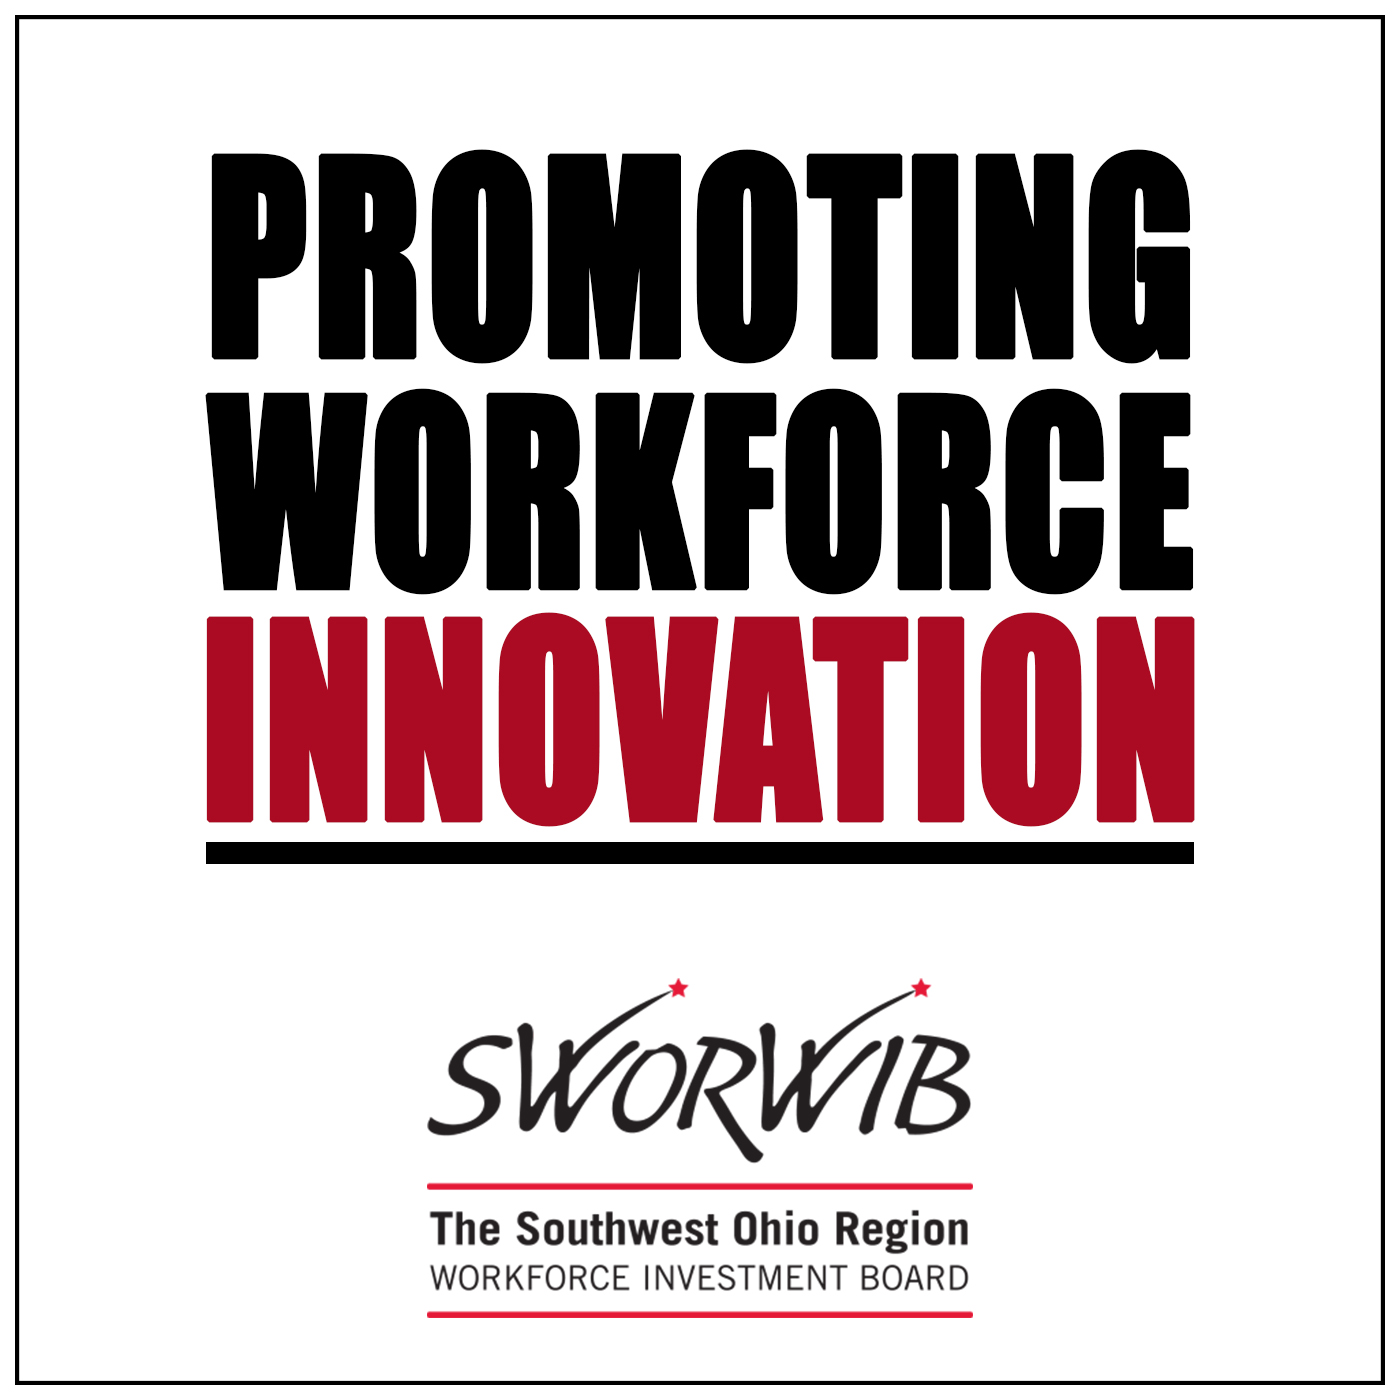 Promoting Workforce Innovation